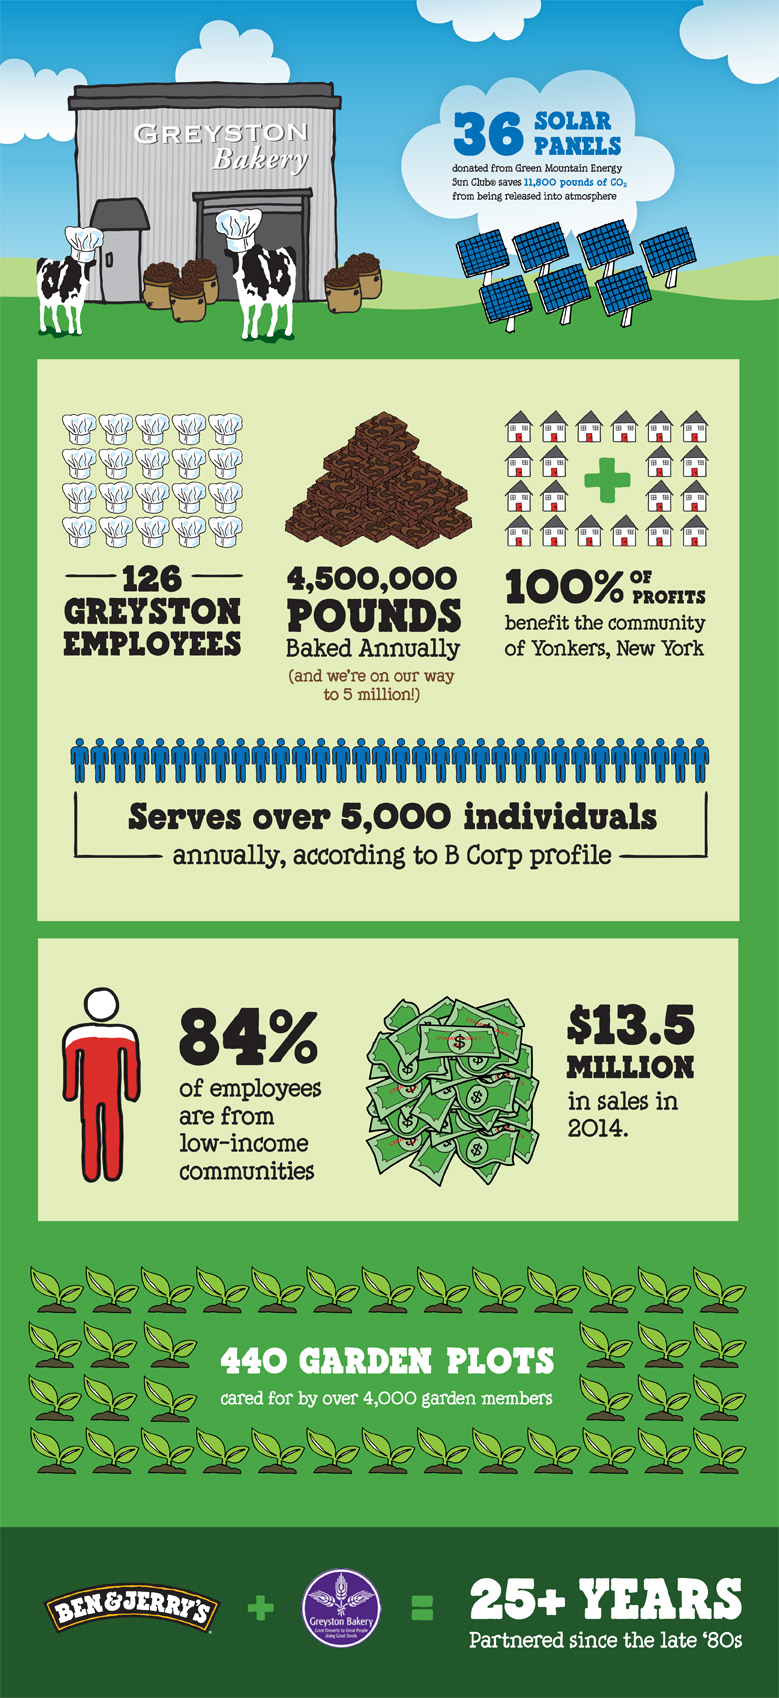 Ben & Jerry's Greyston Bakery Infographic